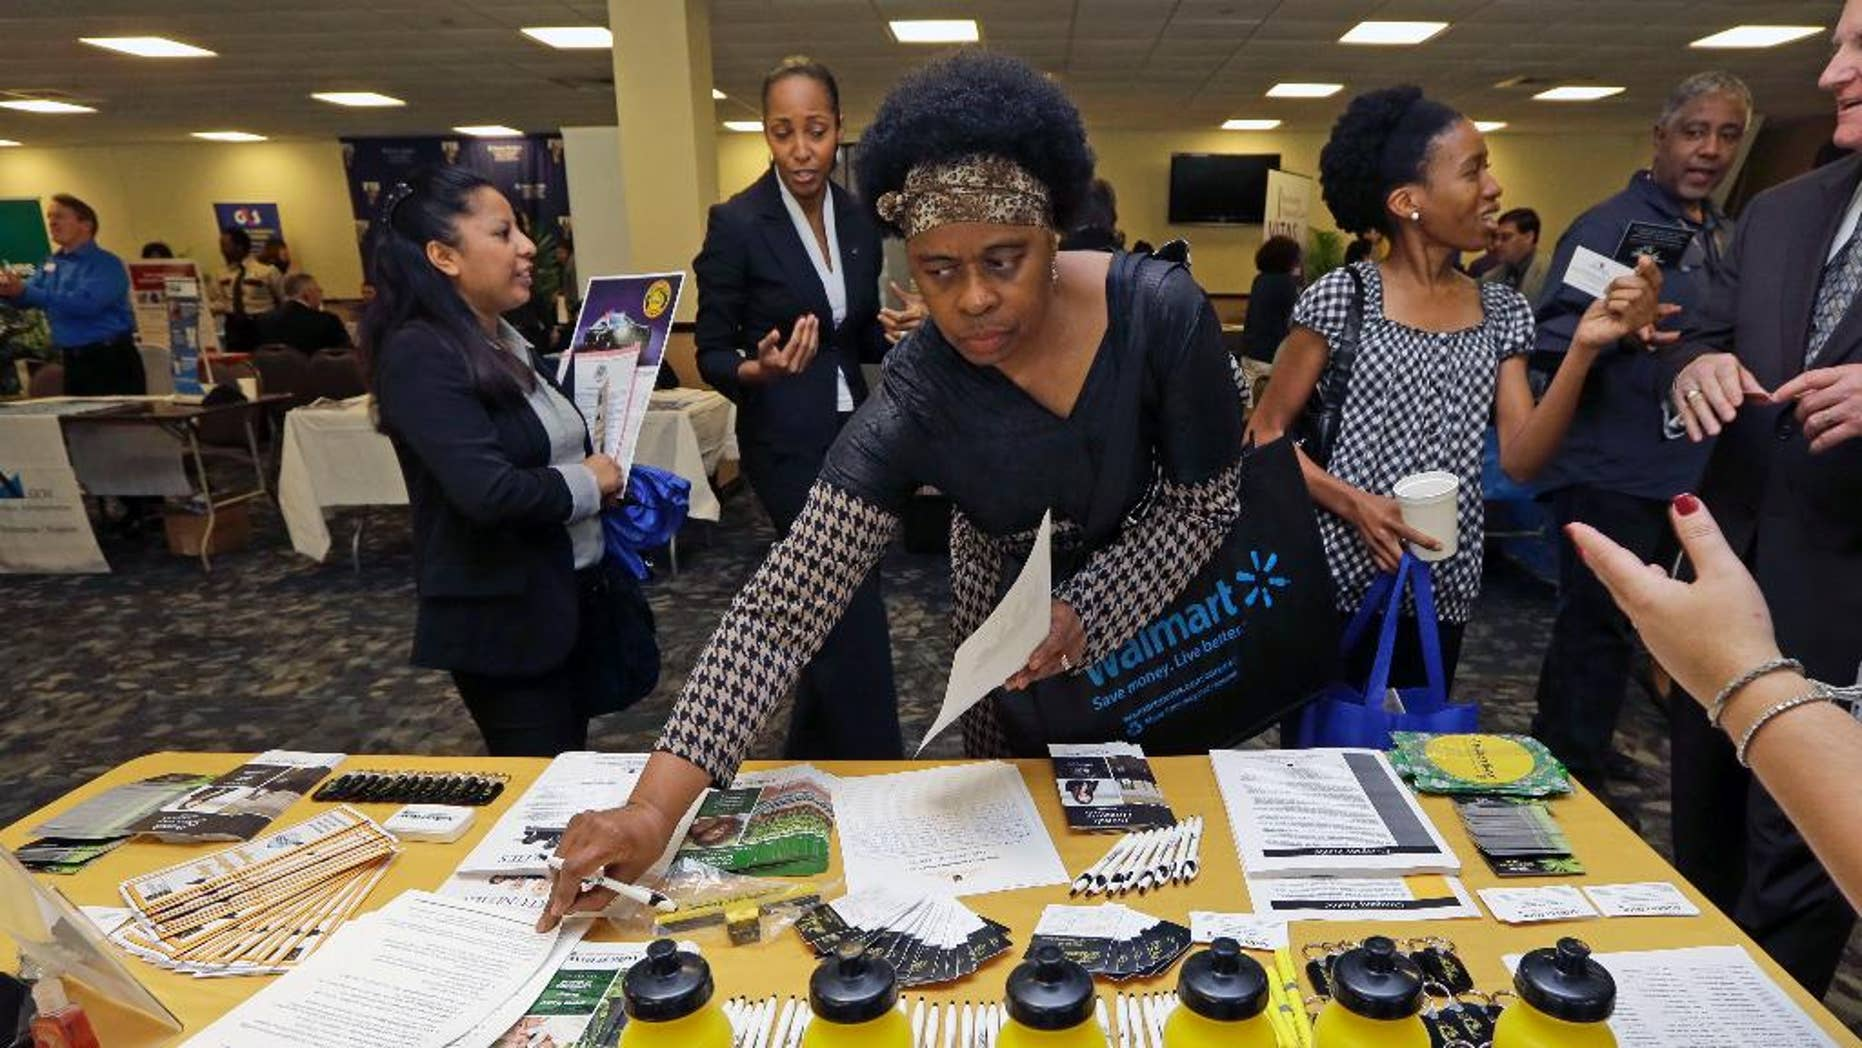 In this photo taken Friday, Feb. 6, 2015, U.S. Army Veteran Fay Belton picks up job information at the annual Veterans Career and Resource Fair in Miami. The U.S. Labor Department reports on the number of people who applied for unemployment benefits for the week ending Feb. 14 on Thursday, Feb. 19, 2015. (AP Photo/Alan Diaz)